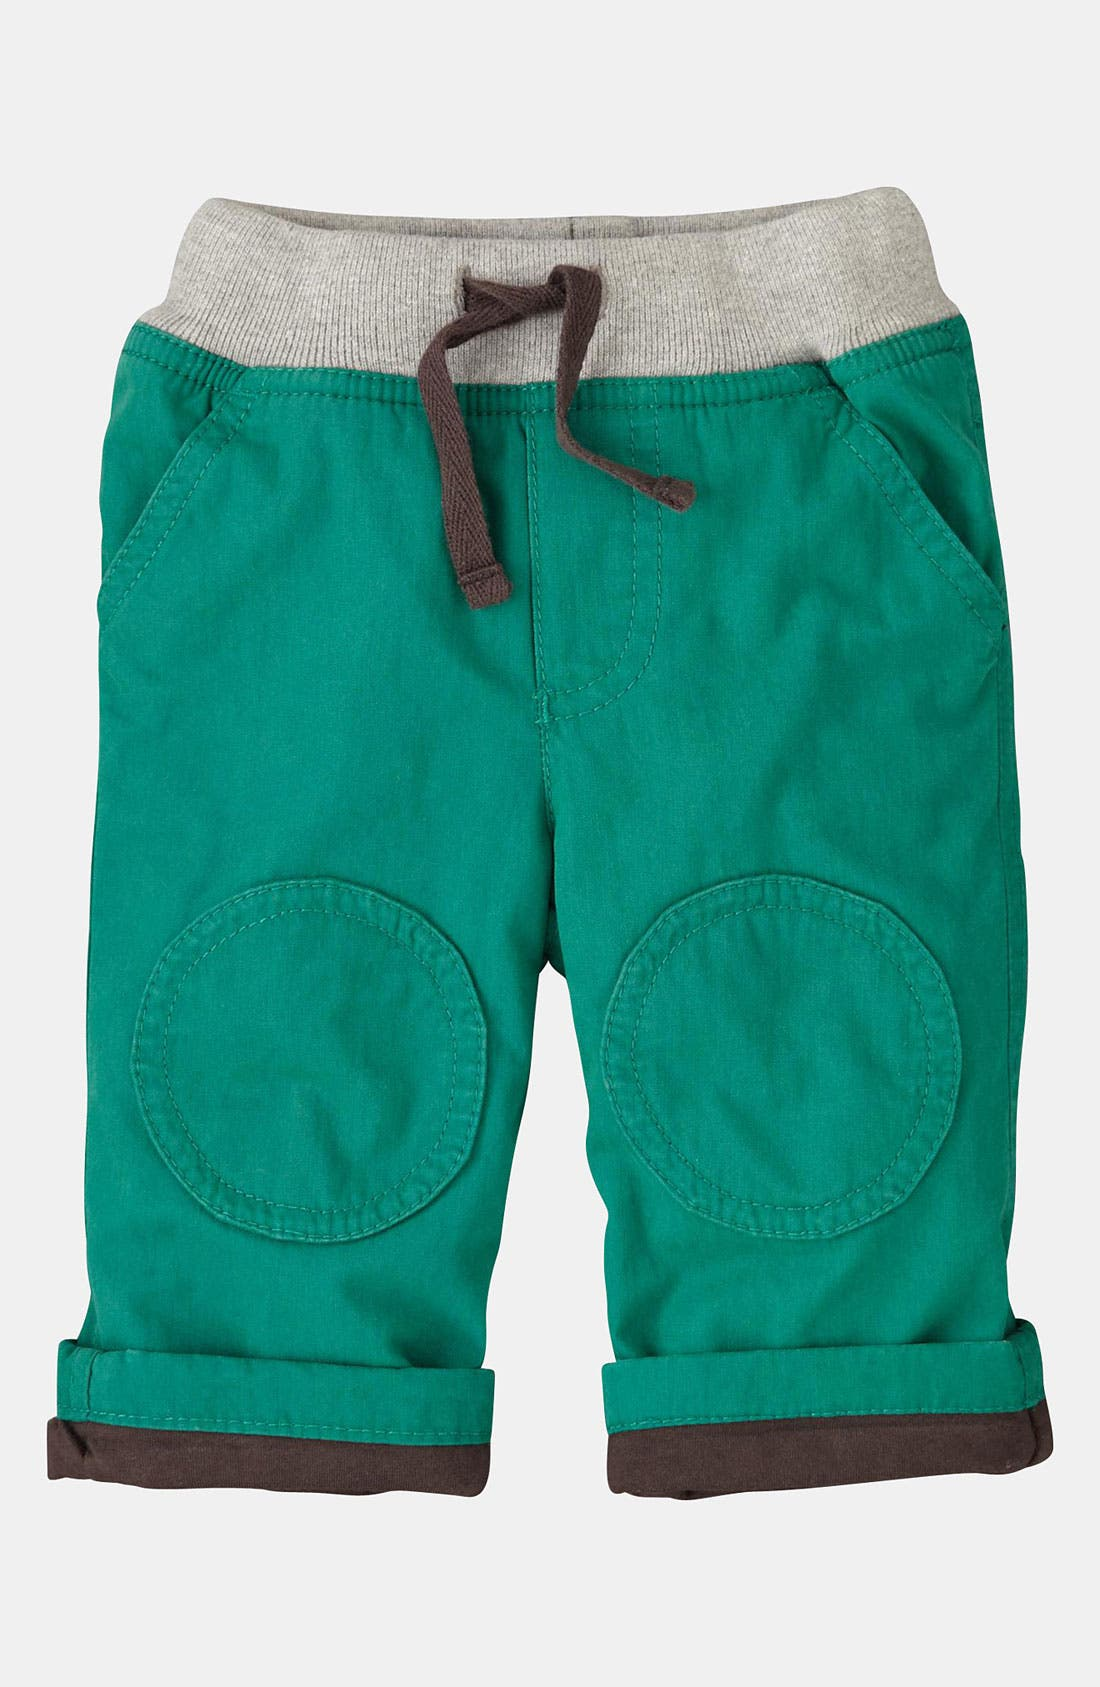 Alternate Image 1 Selected - Mini Boden 'Everyday' Pants (Infant)